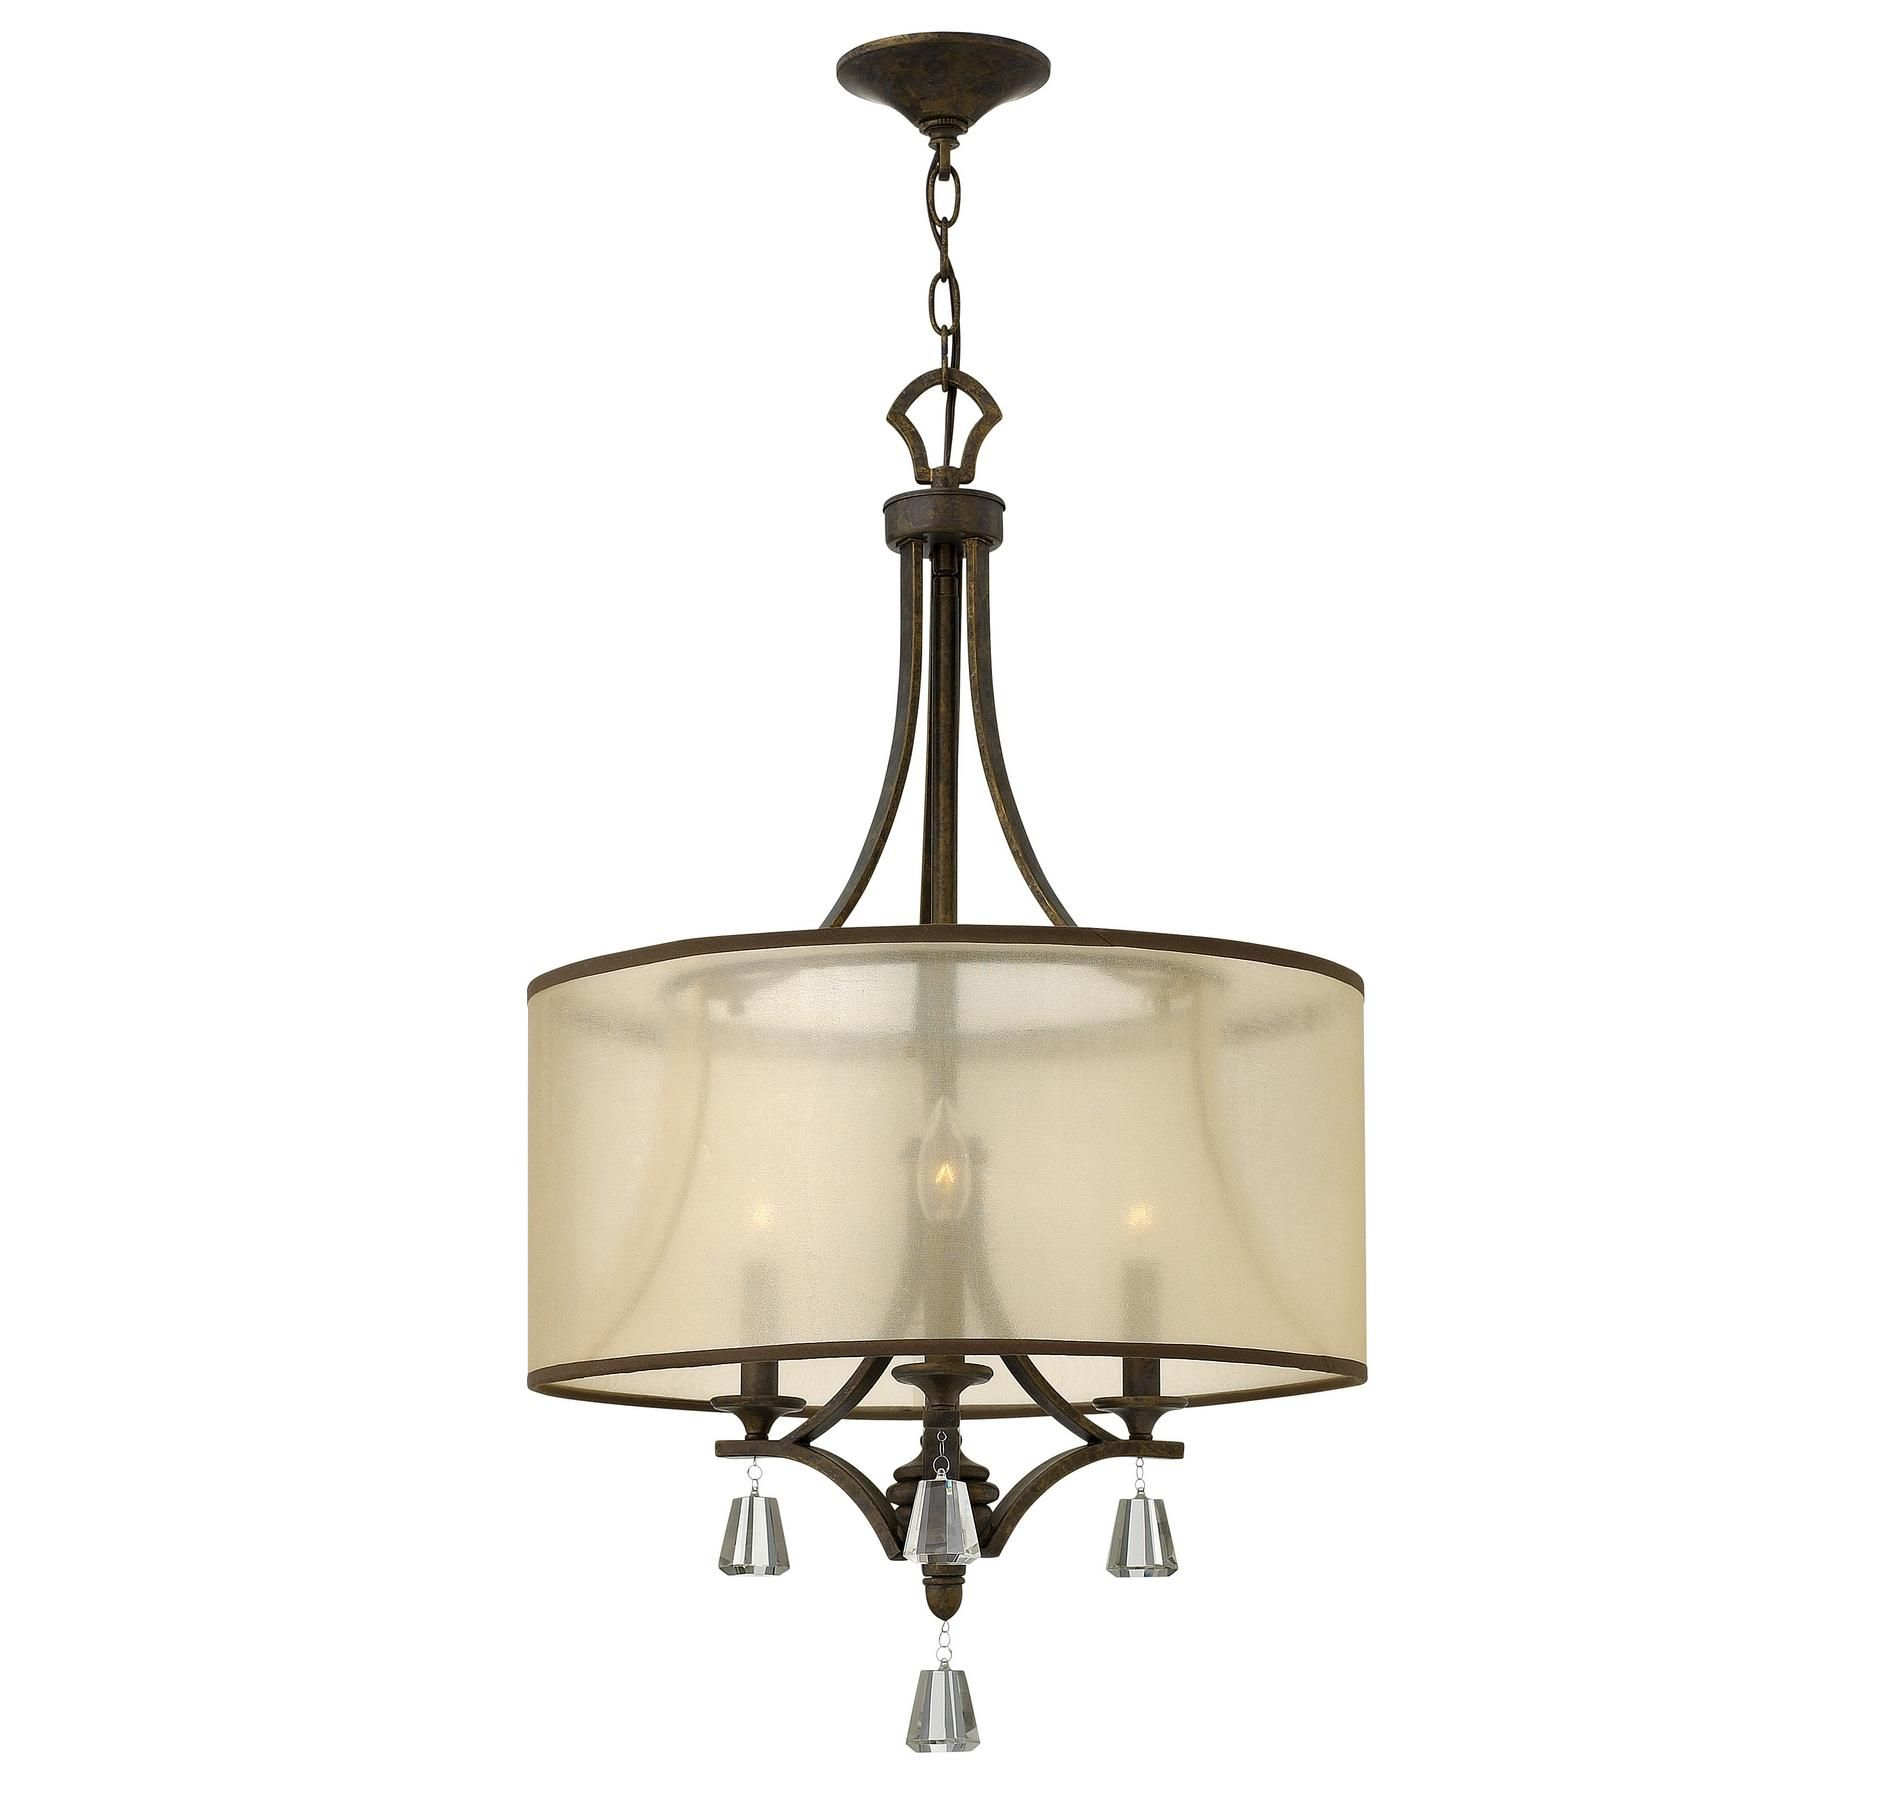 Breakfast Nook Light 3 Light Chandelier Drum Shade